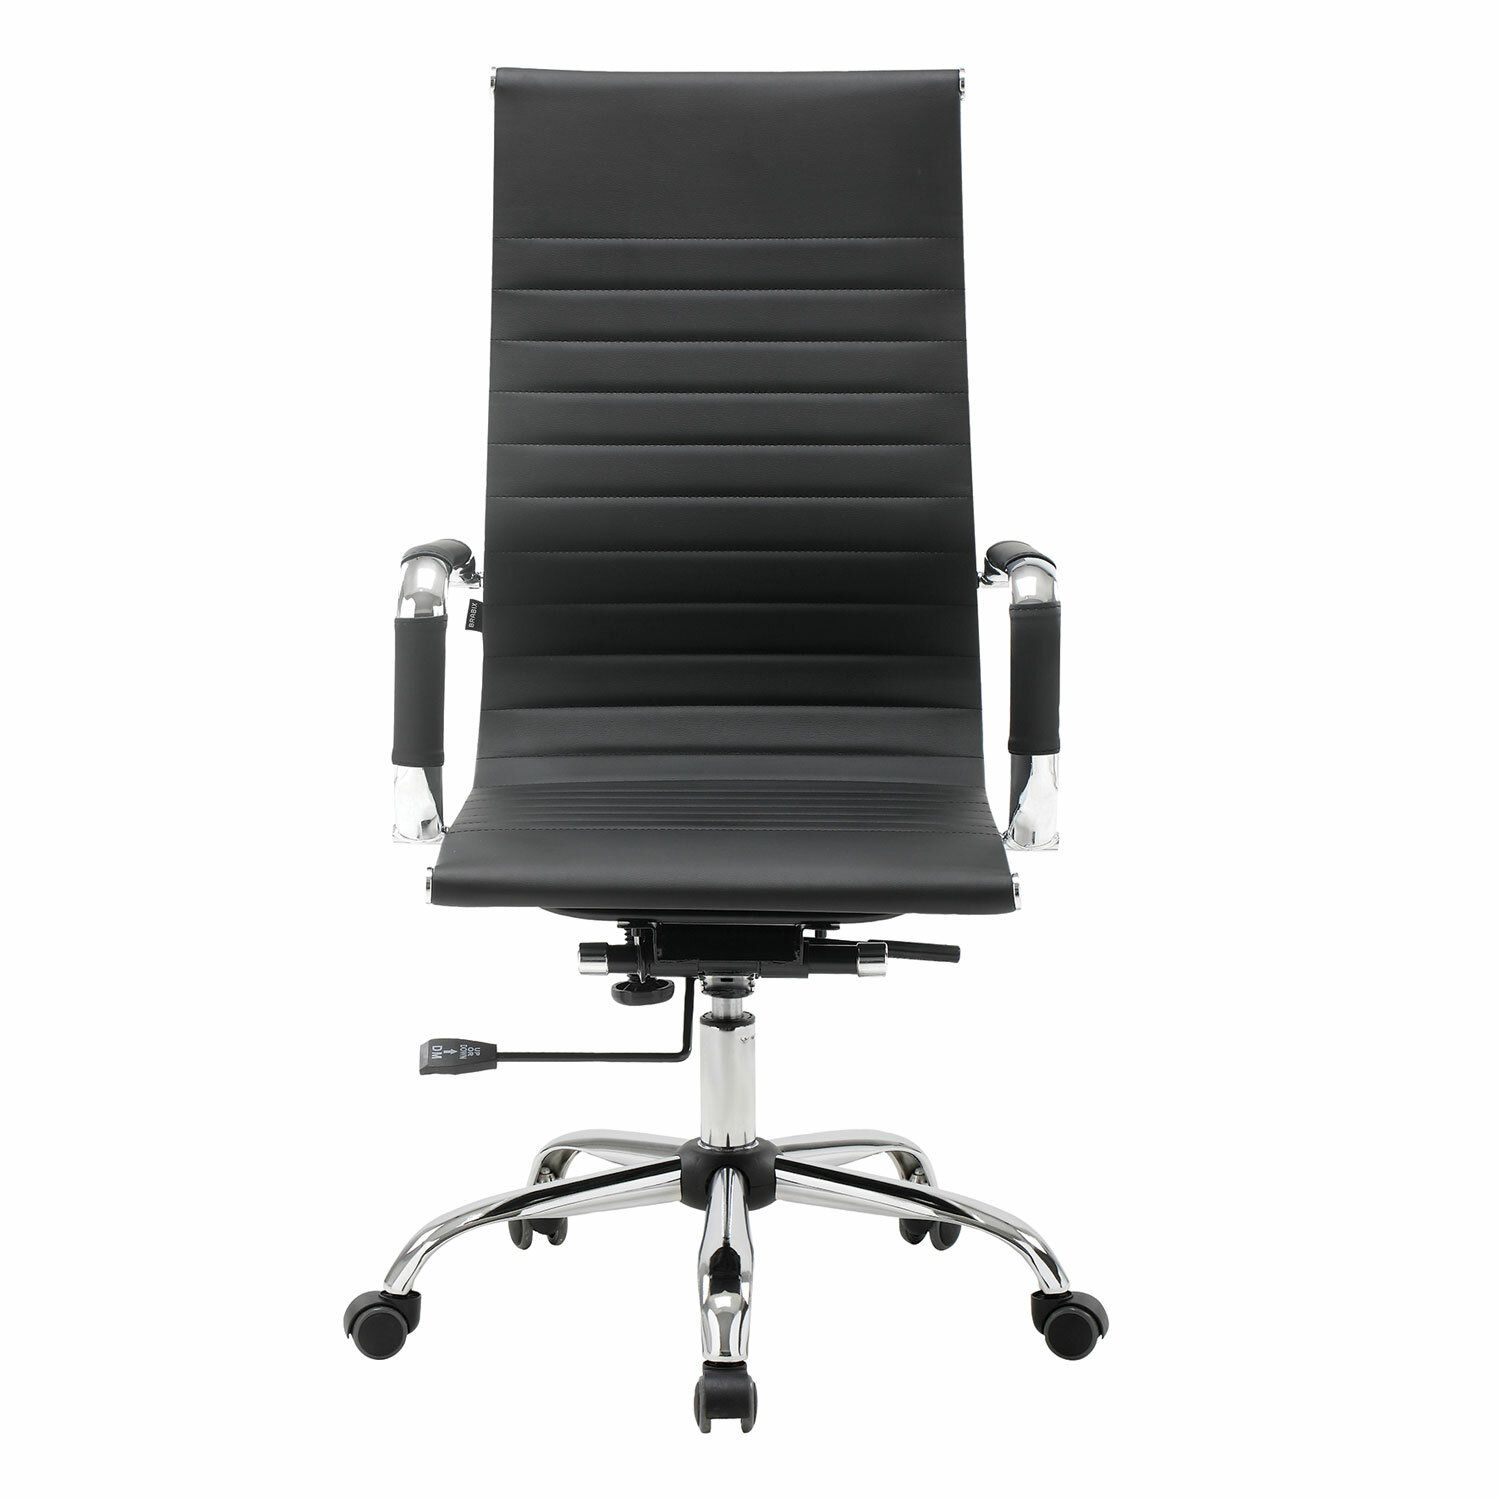 """Office chair BRABIX """"Energy EX-509"""", recycled leather, chrome, black"""